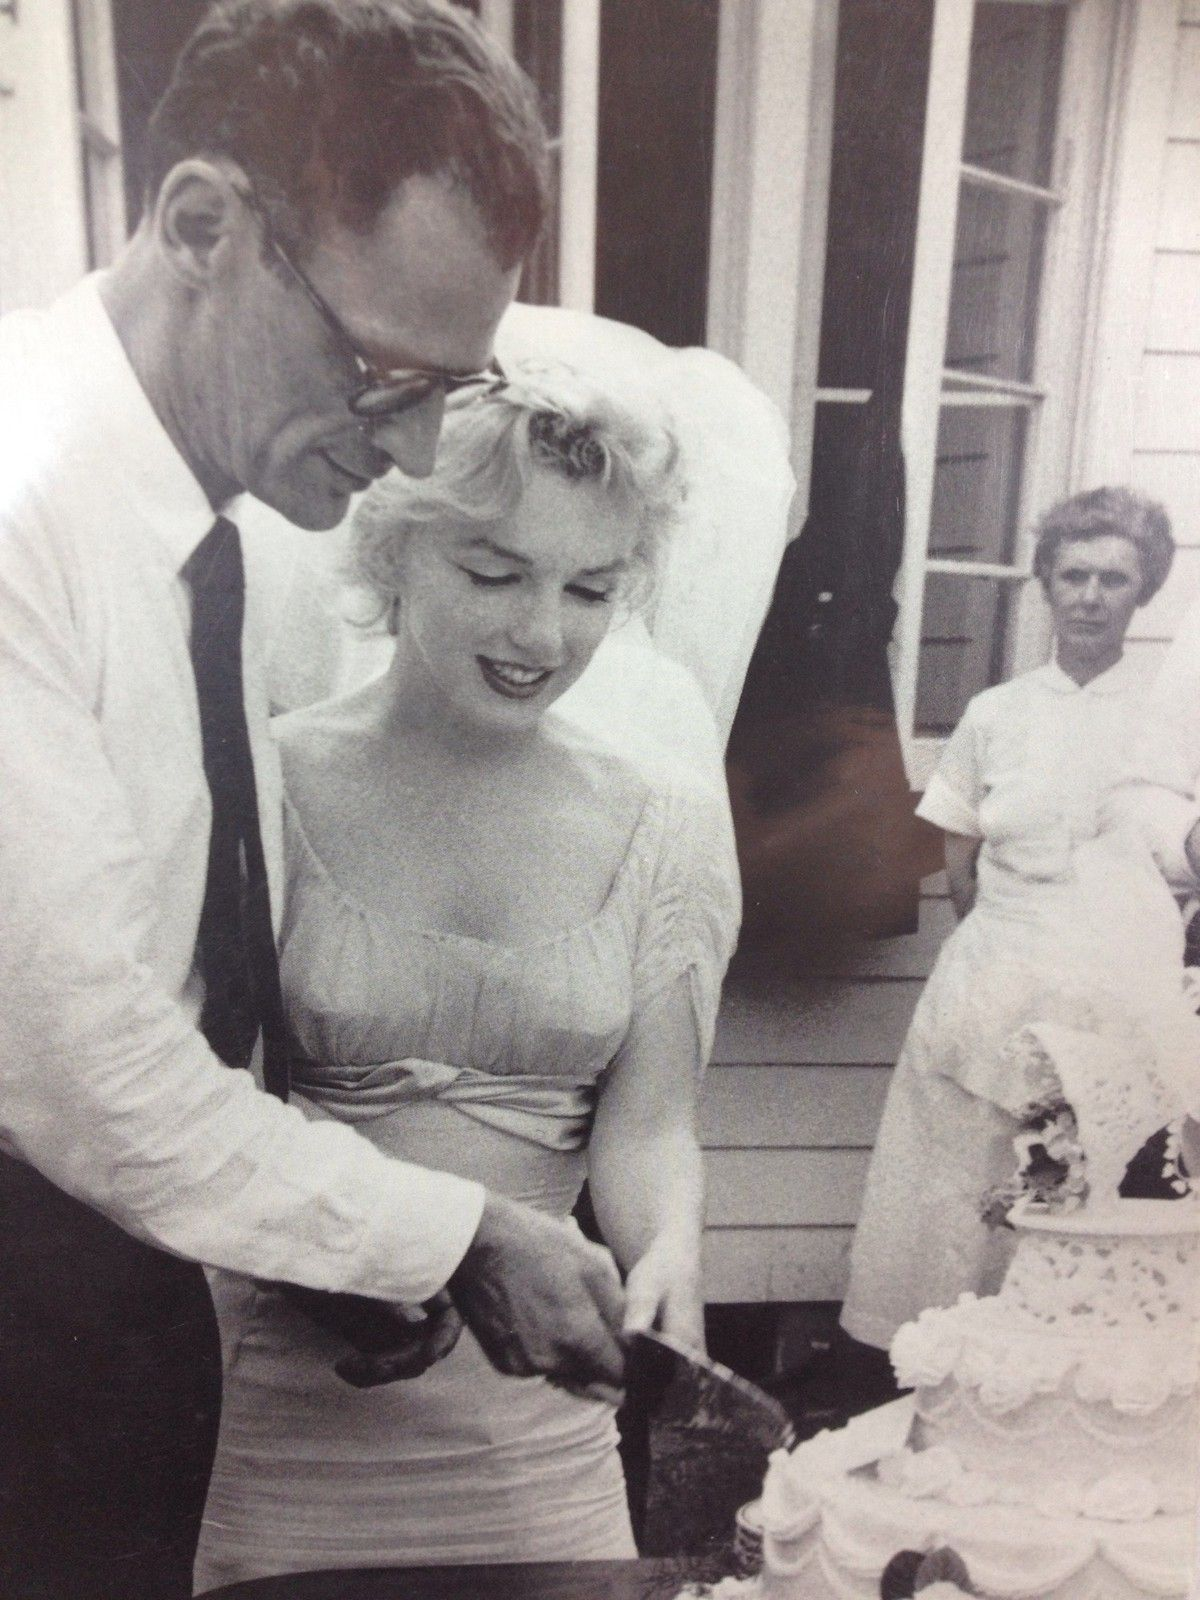 Marilyn Monroe And Arthur Miller On Their Wedding Day 1 July 1956 Photo By Milton Greene Marilyn Monroe Marilyn Marilyn Monroe Wedding